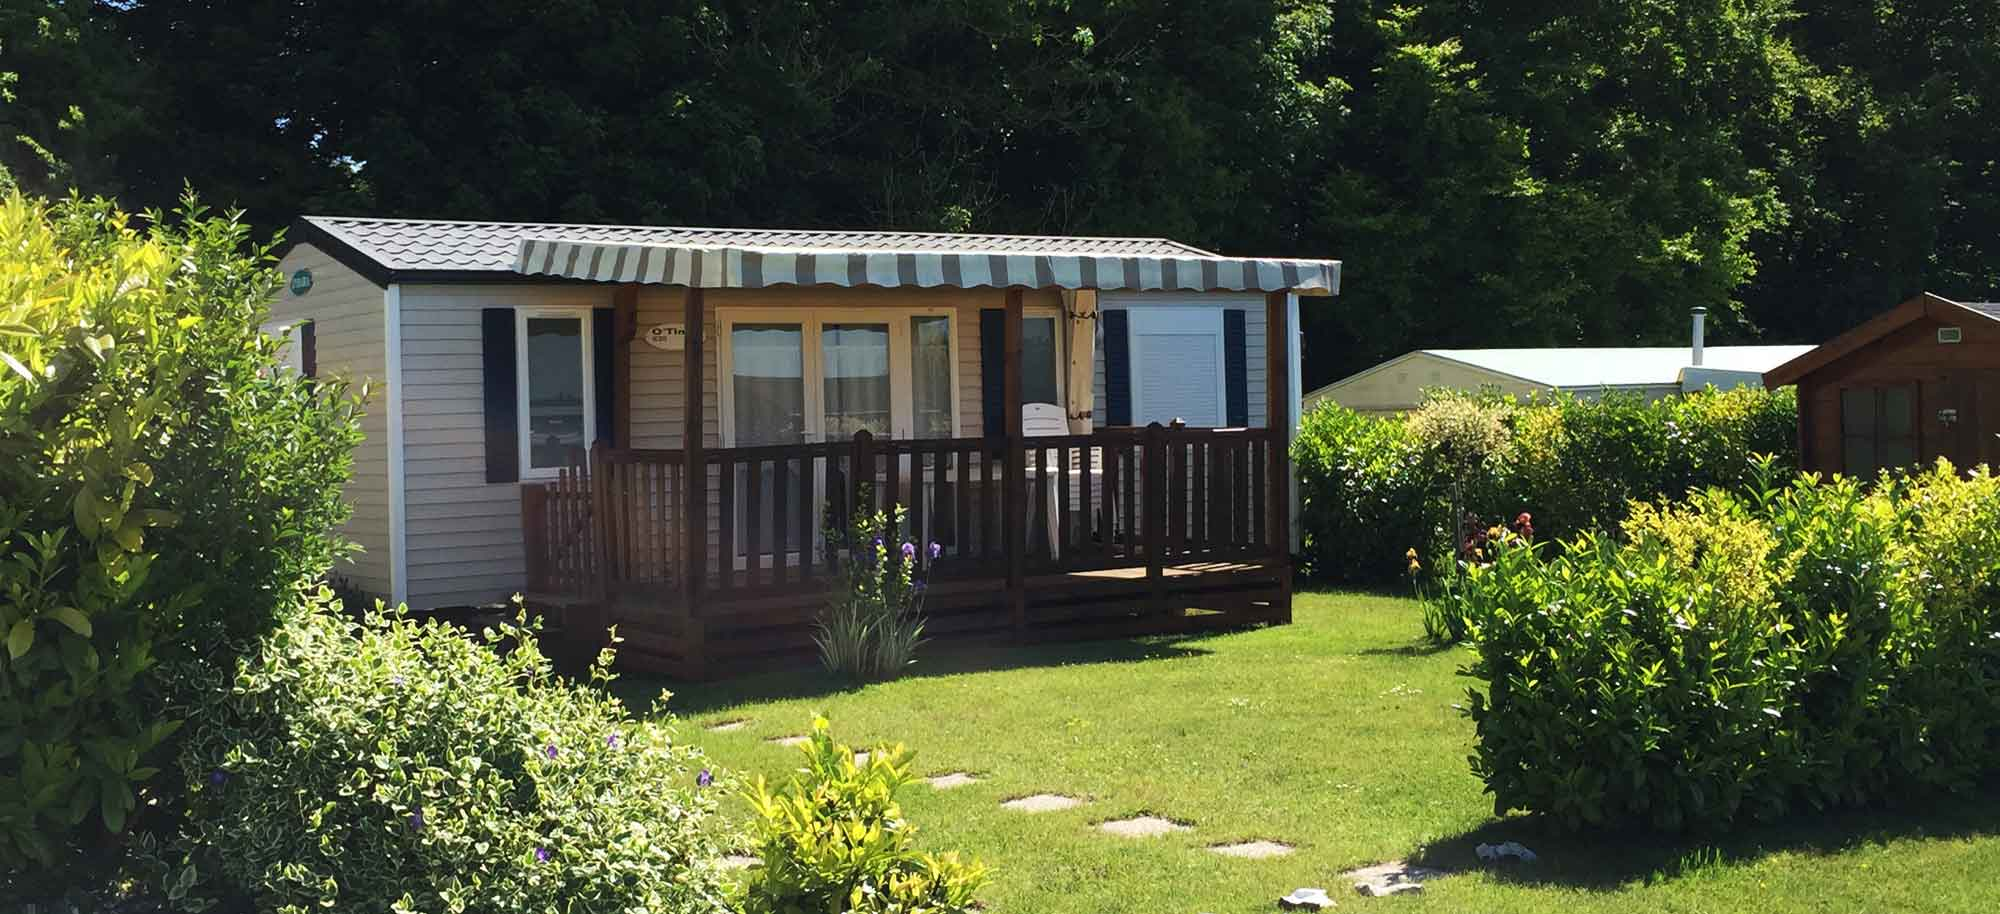 Mobilhome a vendre dans camping 80